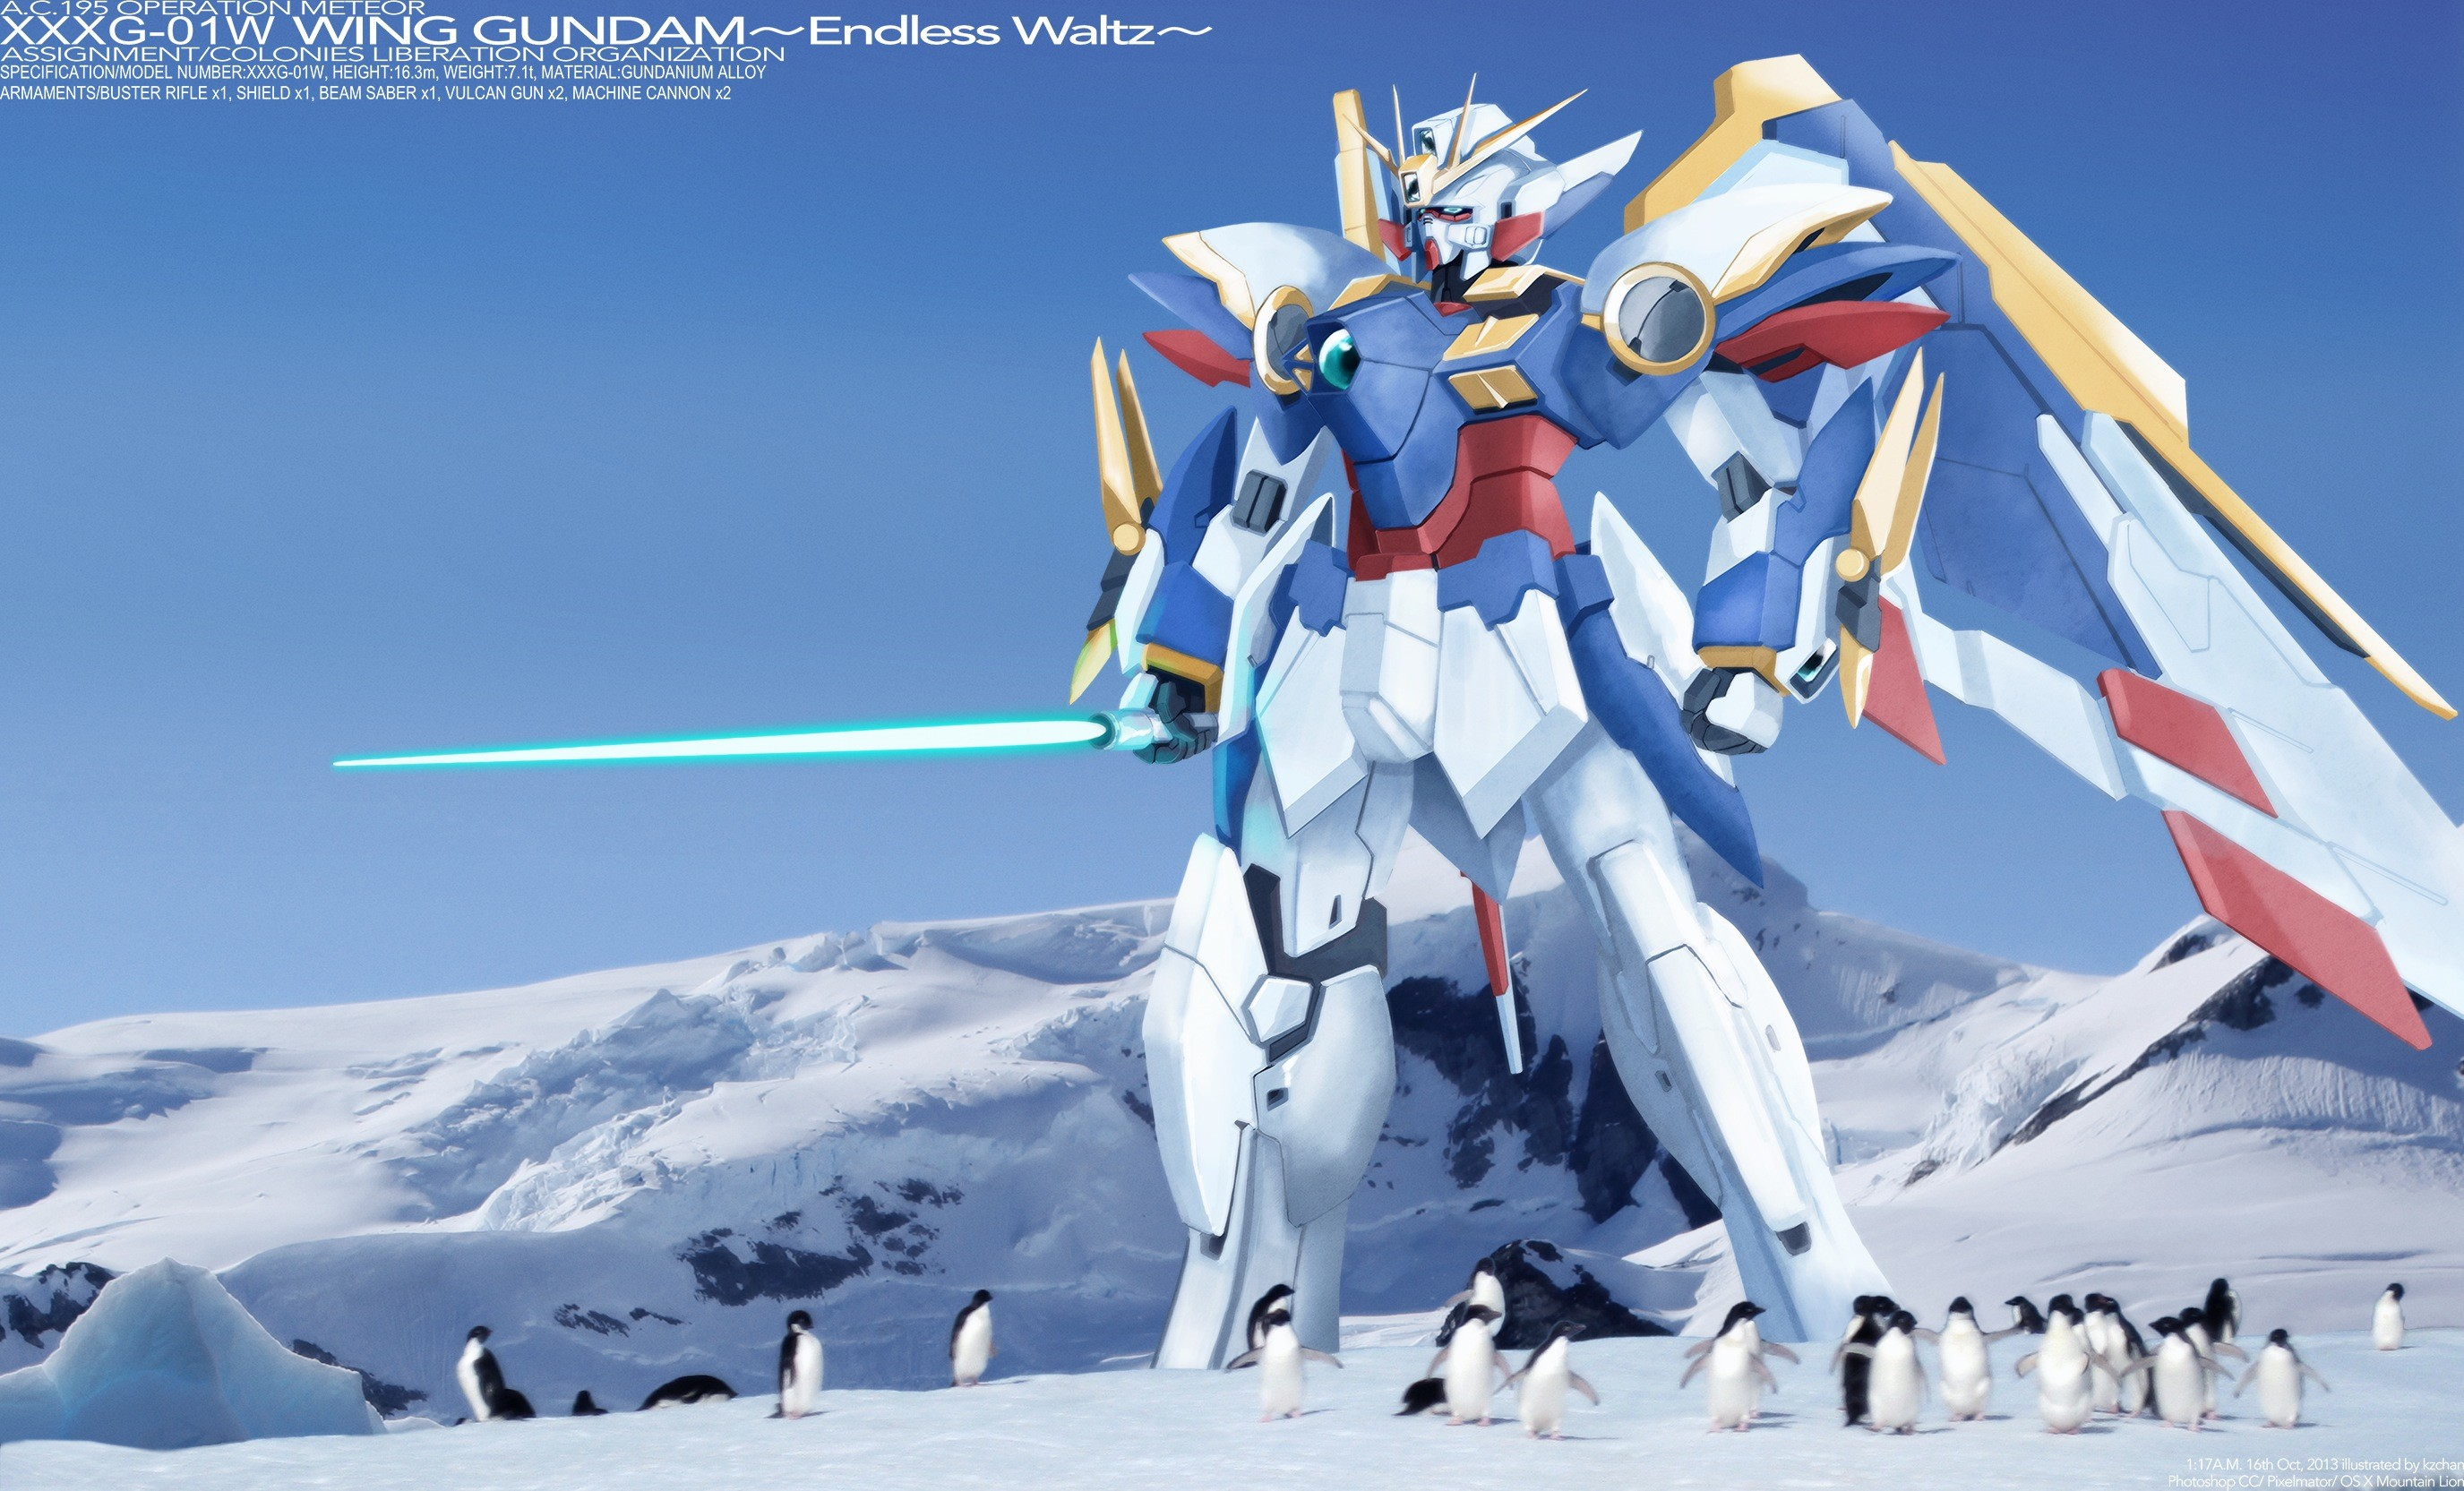 2751x1665 Wallpaper of Wing Gundam hanging out with some Penguins